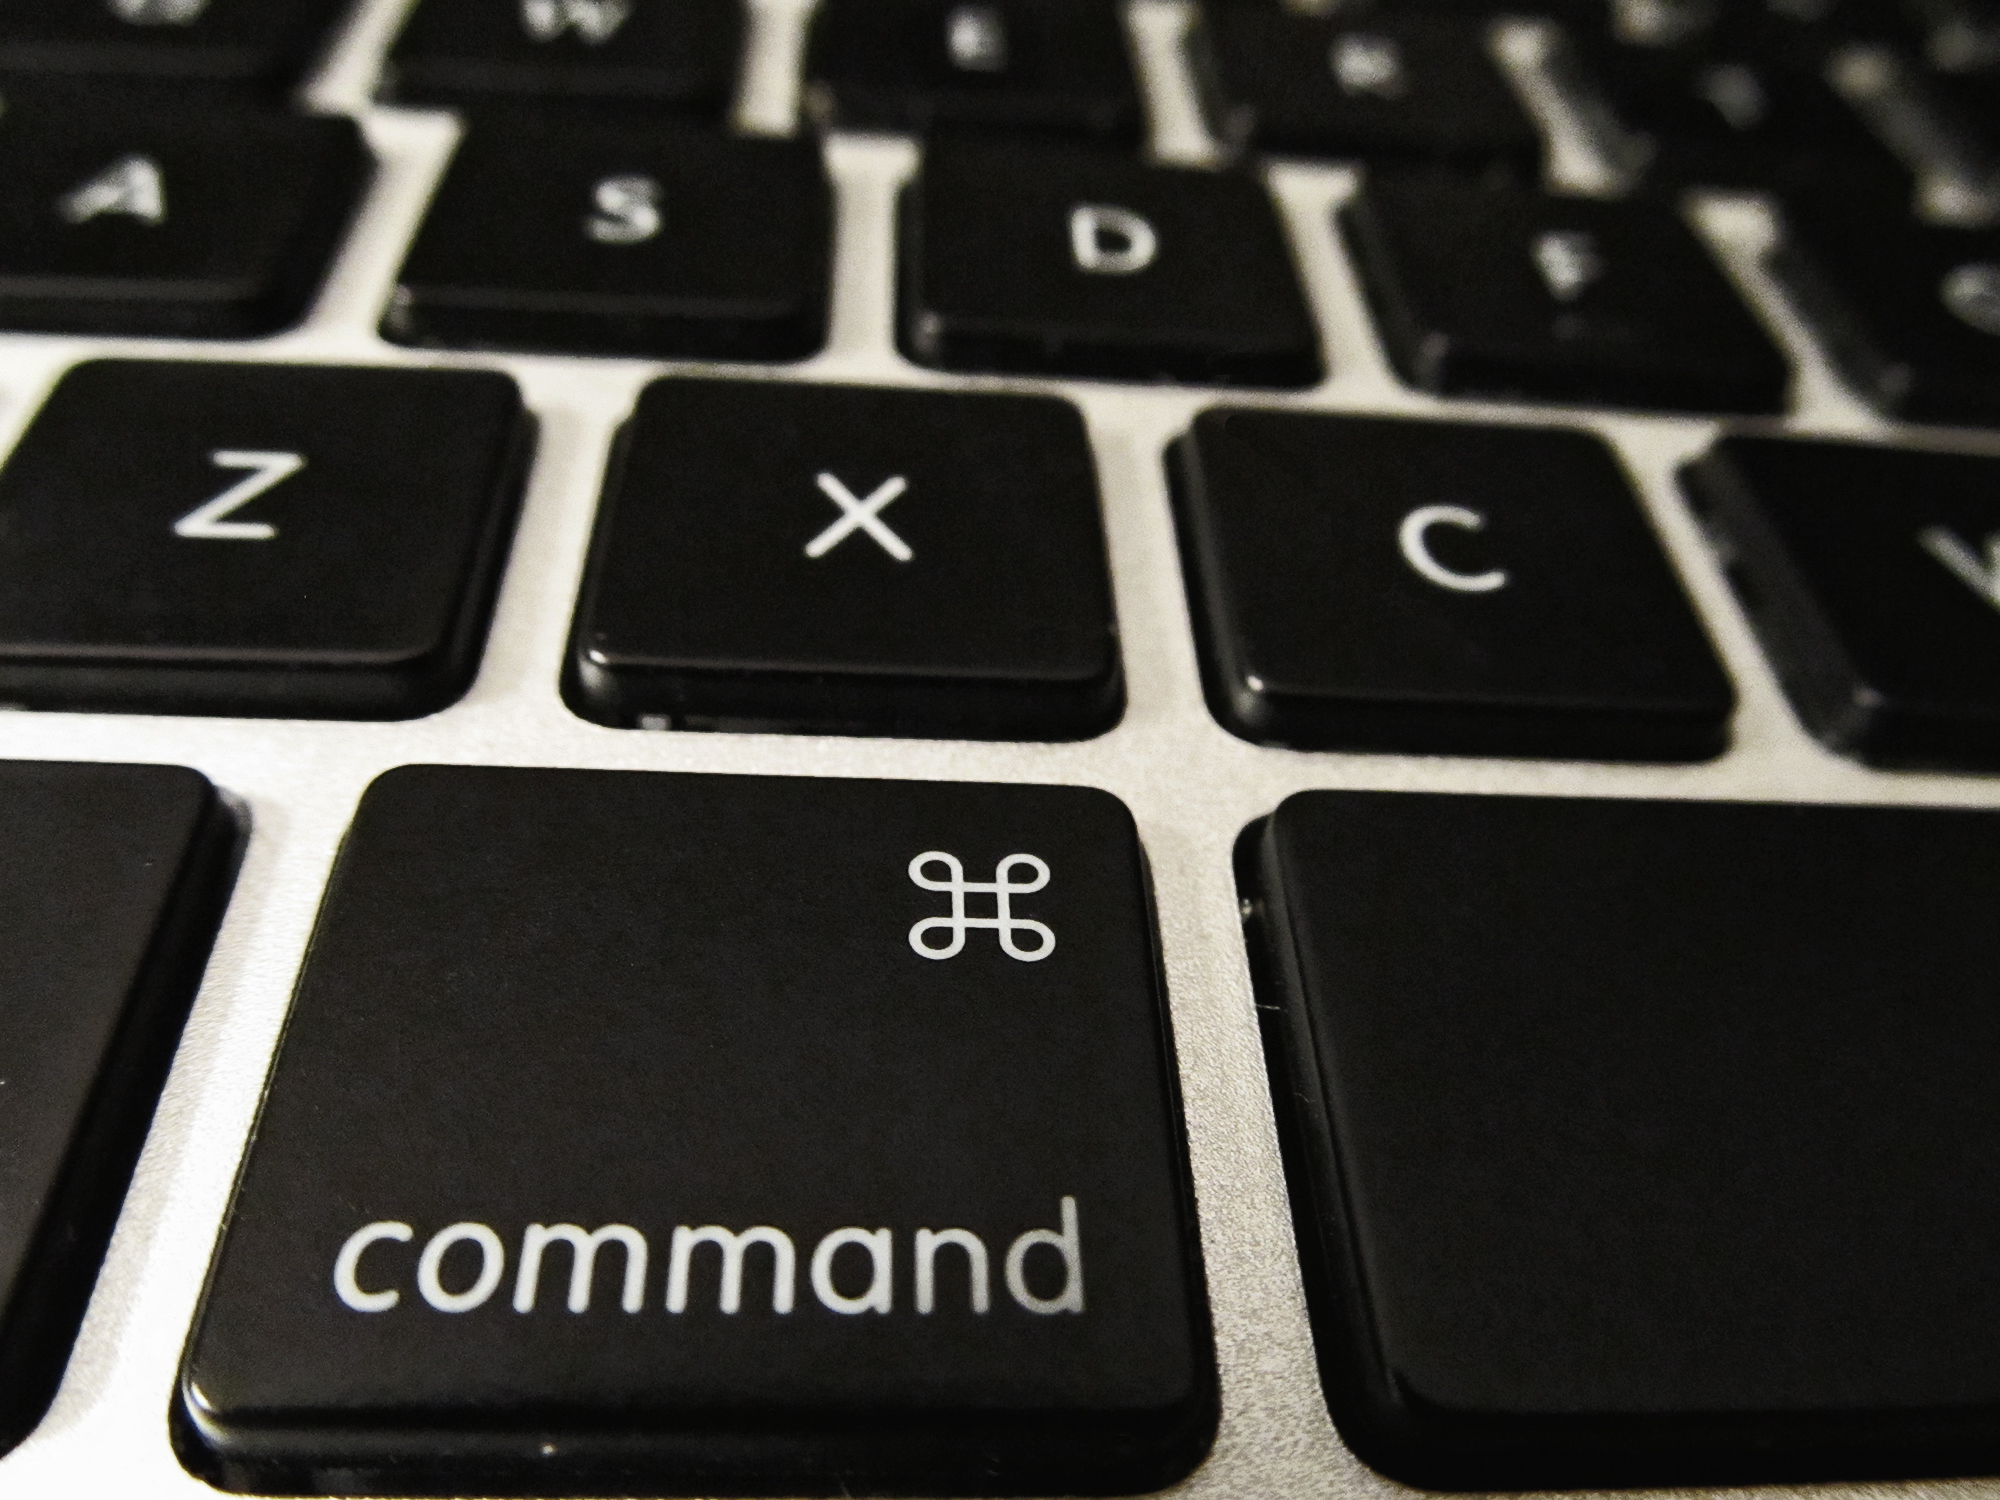 Command Key | Flickr - Photo Sharing!